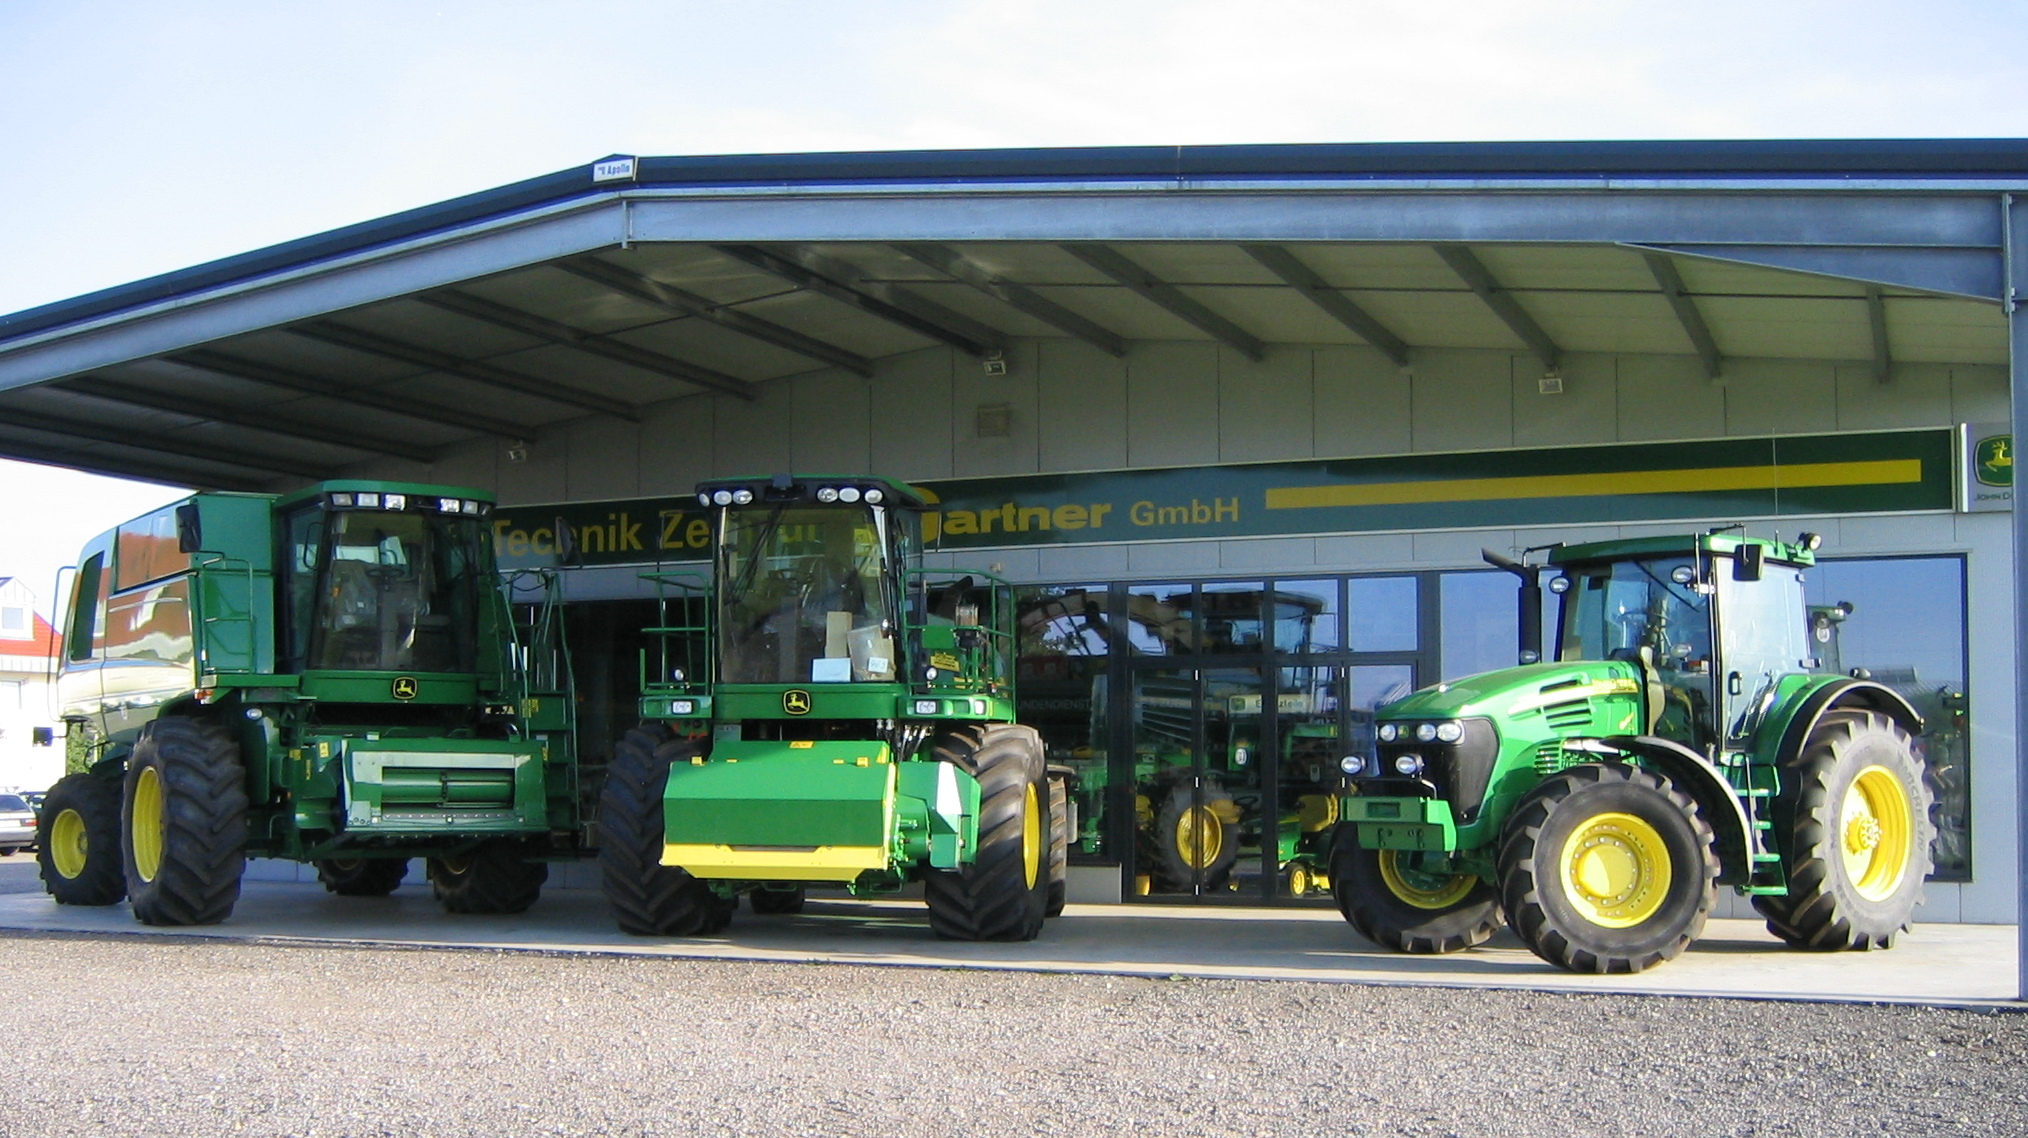 deere and company Deere& company (usually known by its brand name john deere) is an american corporation based in moline, illinois, and the leading manufacturer of agricultural machinery in the world.